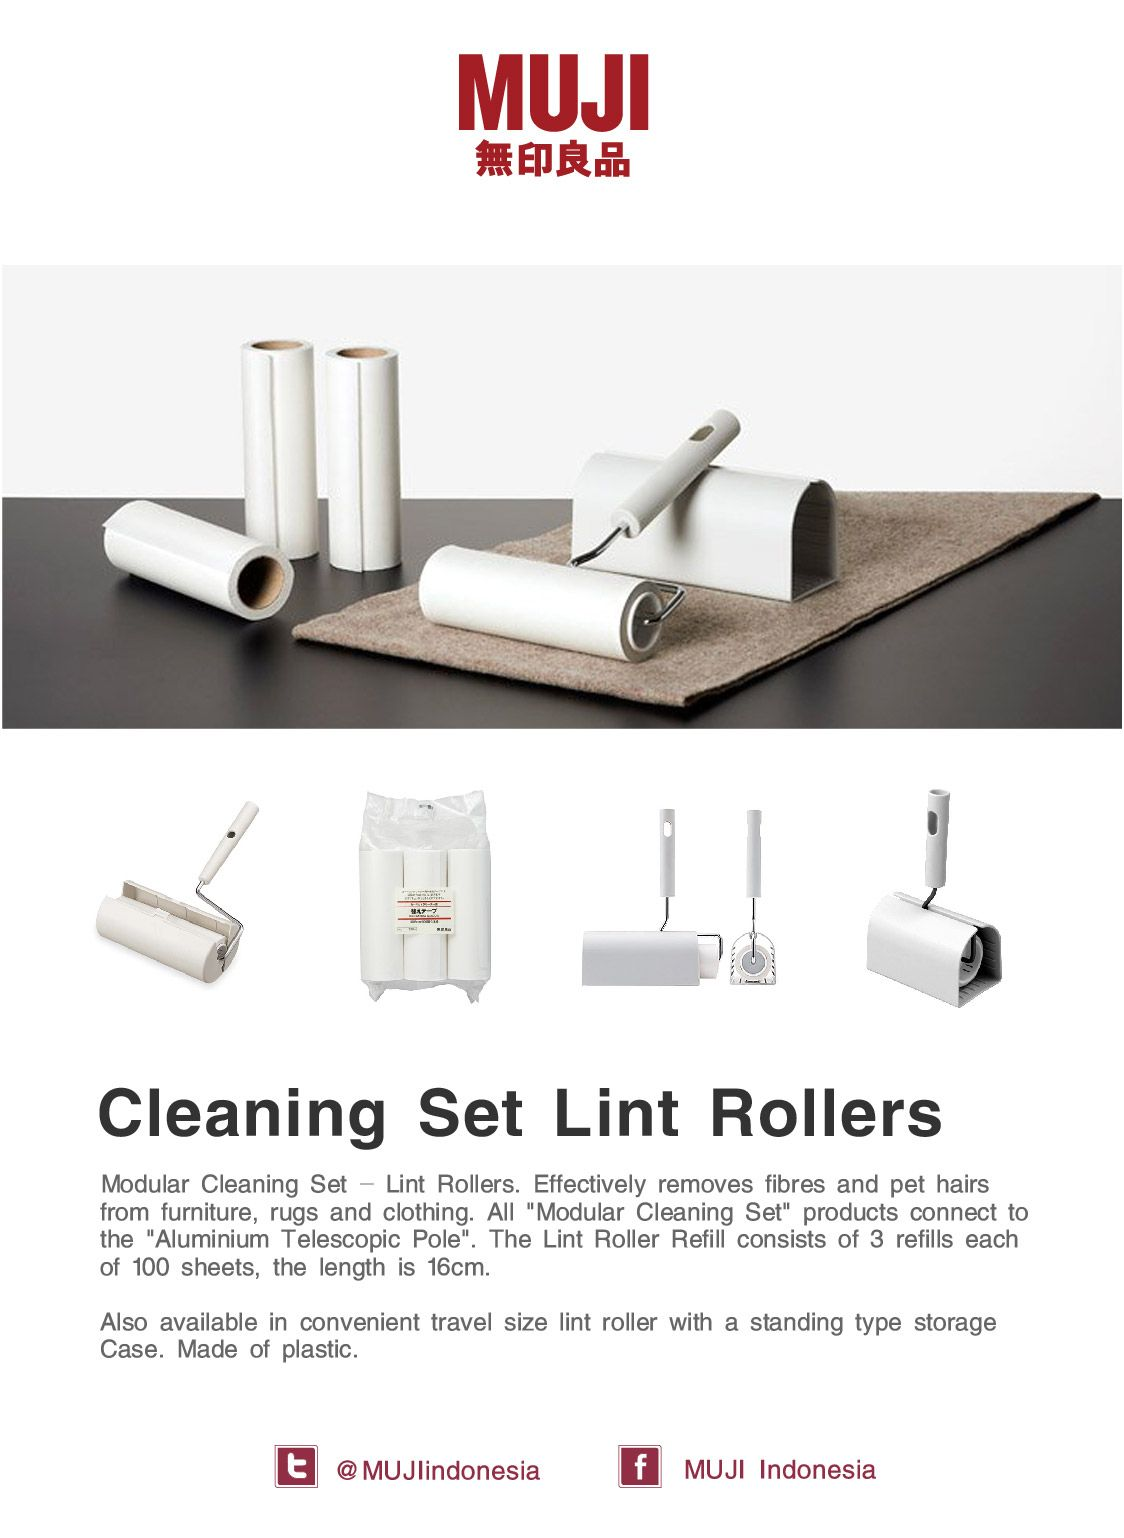 Muji Cleaning Set Lint Rollers Effectively Removes Fibers And Pet Hairs From Furniture Rugs And Clothing